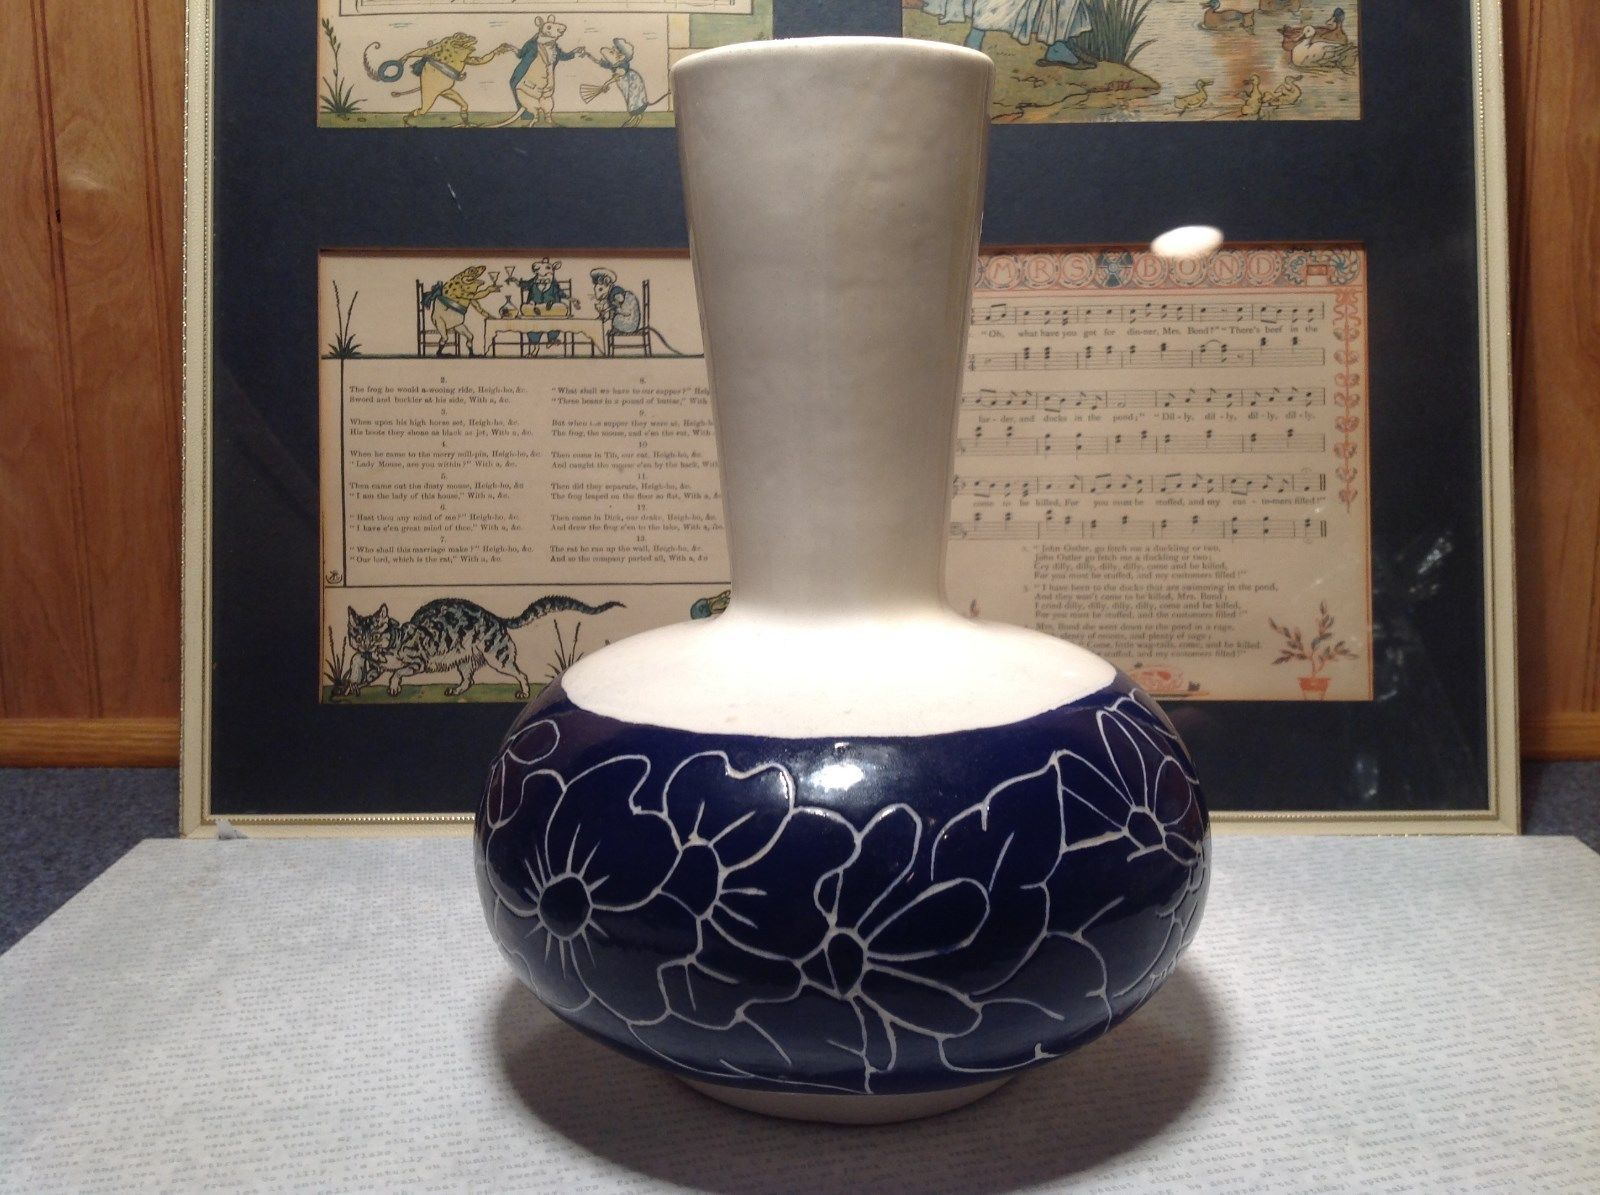 Unique Blue and White Flower Vase with White Flowers Etched on Blue Sides